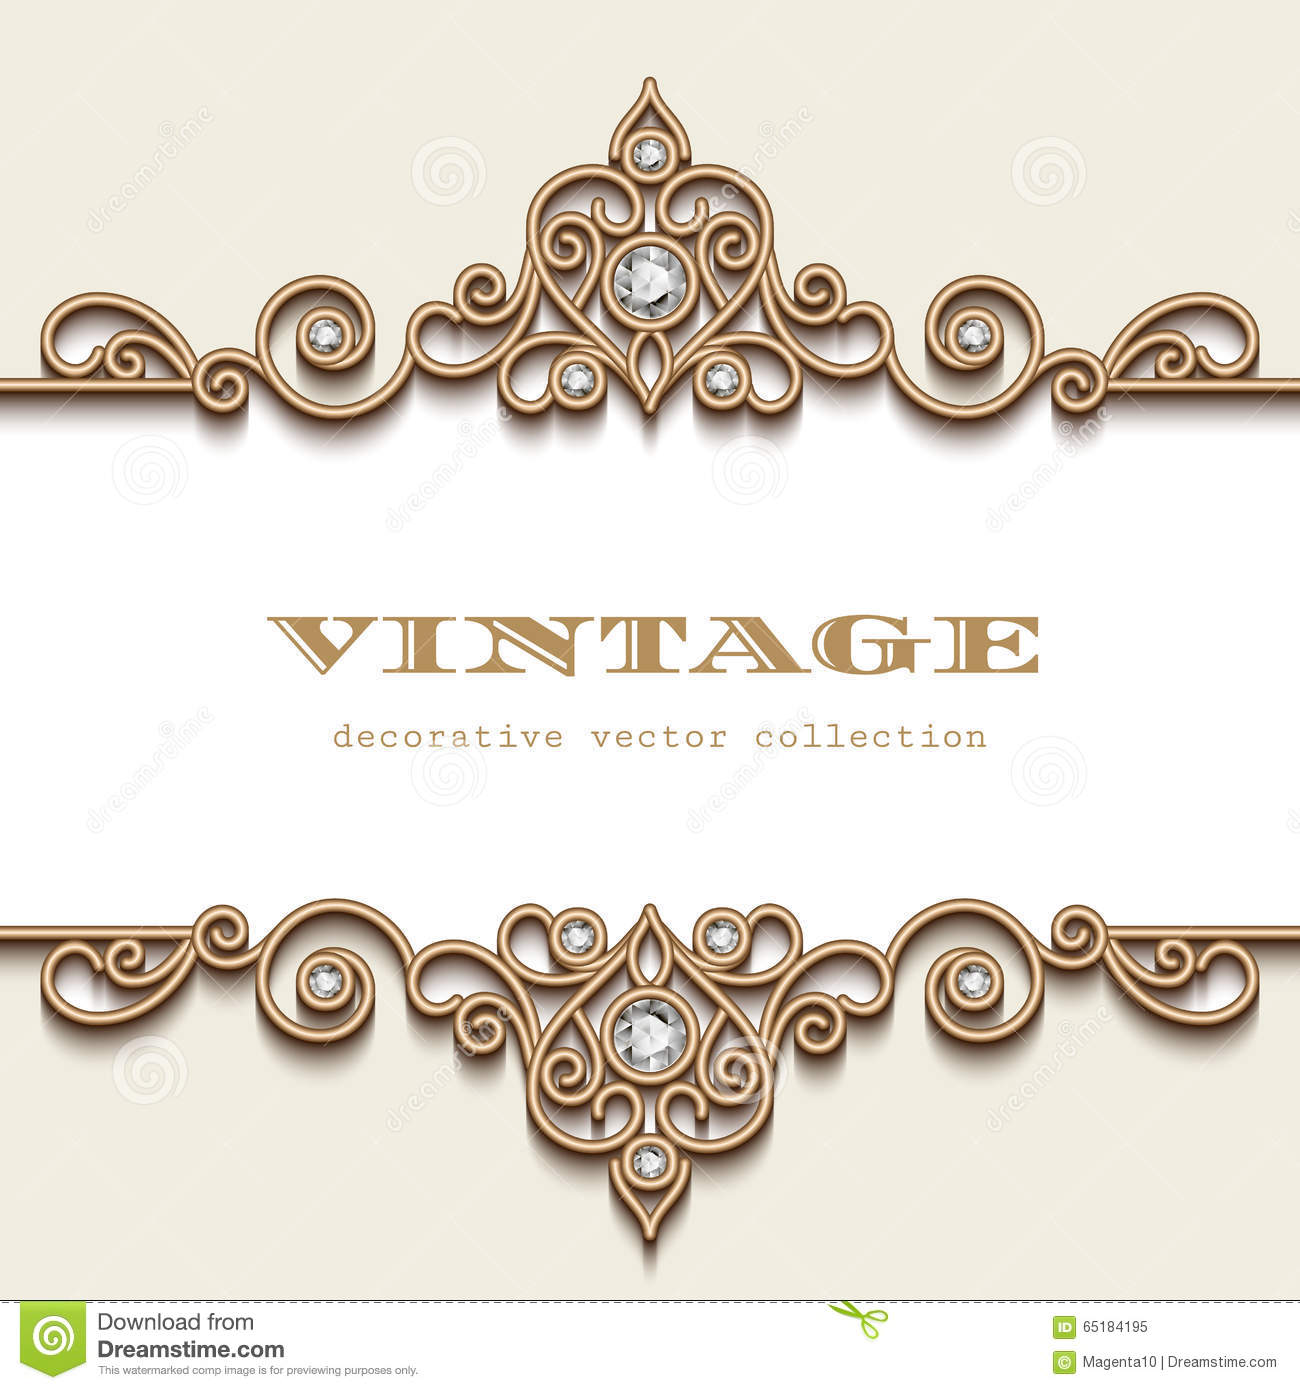 Vintage Gold Jewelry Frame On White Stock Vector Illustration of